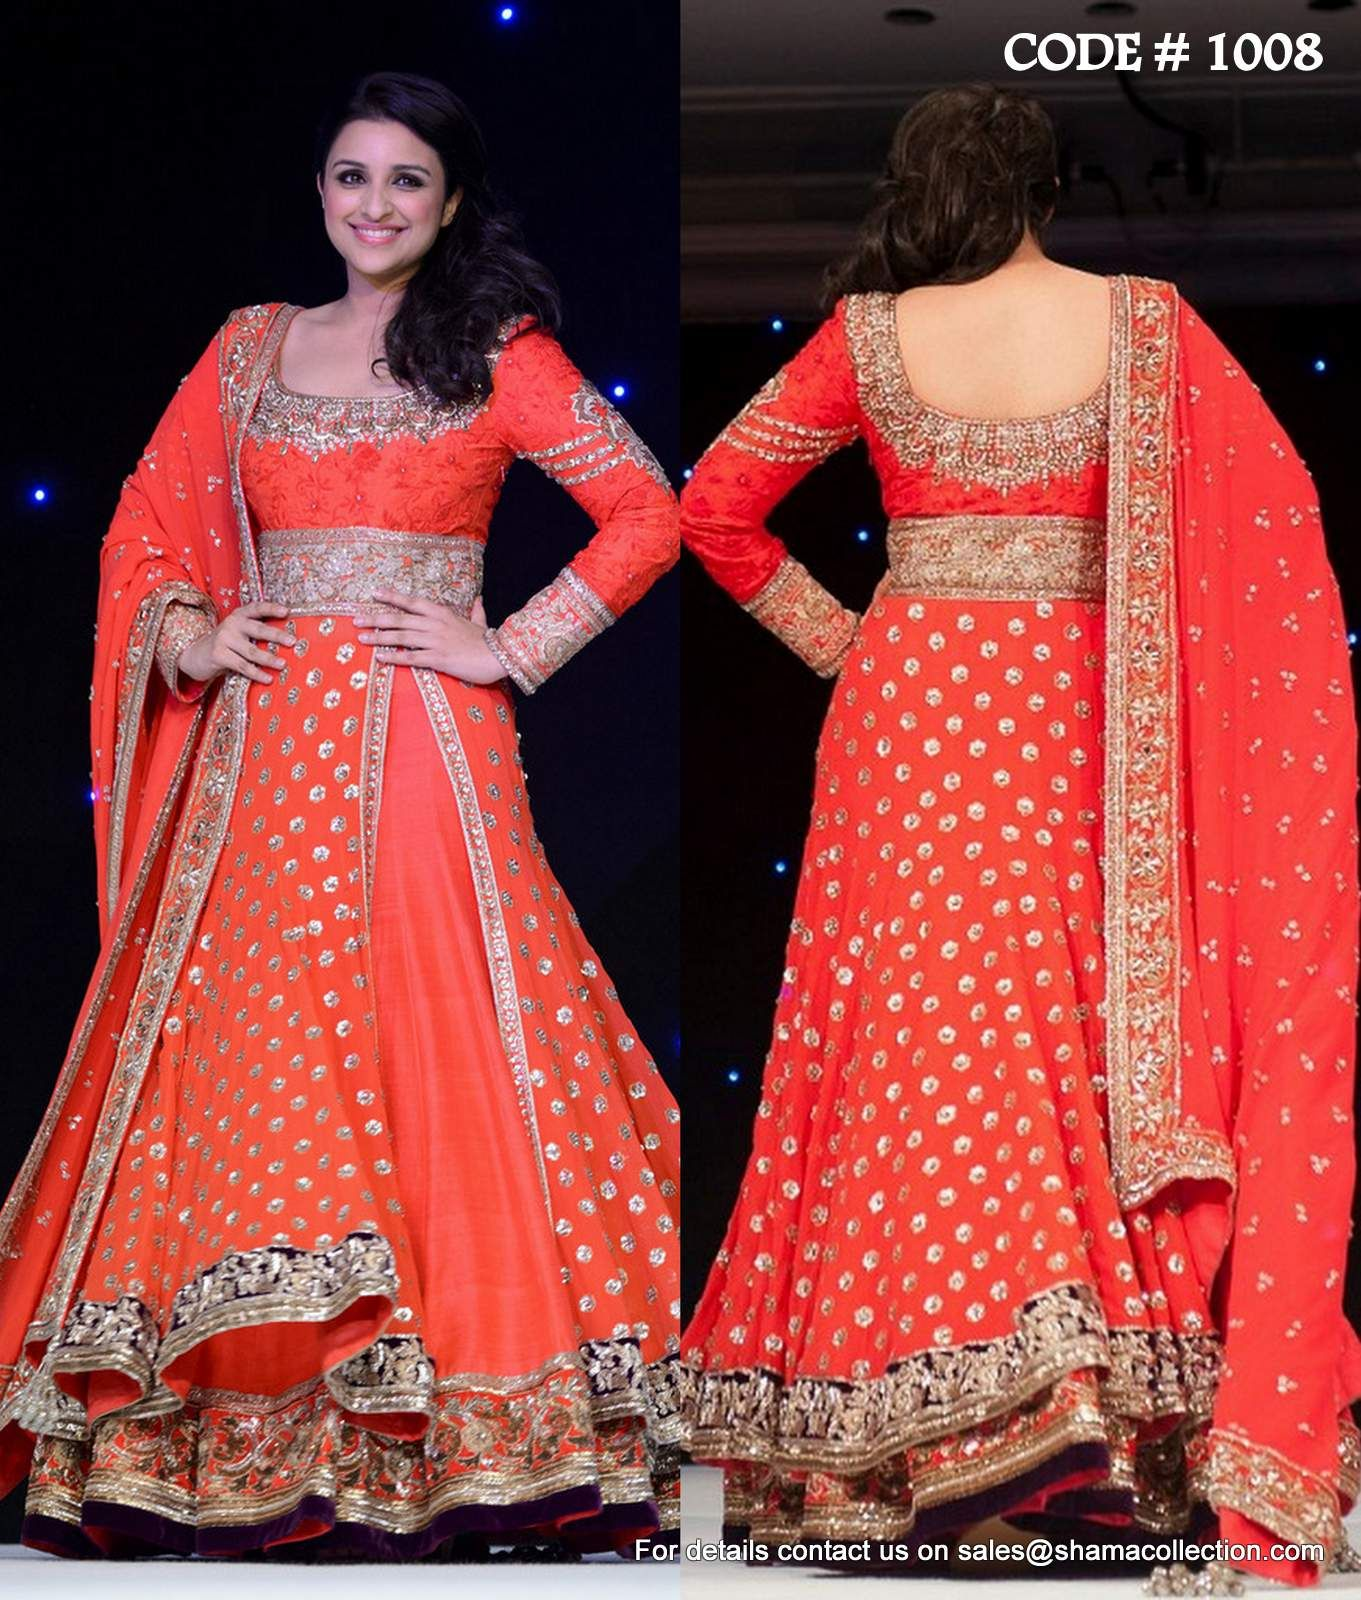 Parineeti Chopra   Now you can choose your wedding lehenga according to your body You need not shy away from wearing that perfect lehenga with these expert tips!   http://www.jivaana.com/editorial/Now+you+can+choose+your+wedding+lehenga+according+to+your+body?eid=563c990eb76f9f665c8b456e   Designer   Lehenga   Tips   Dress according to your body type.